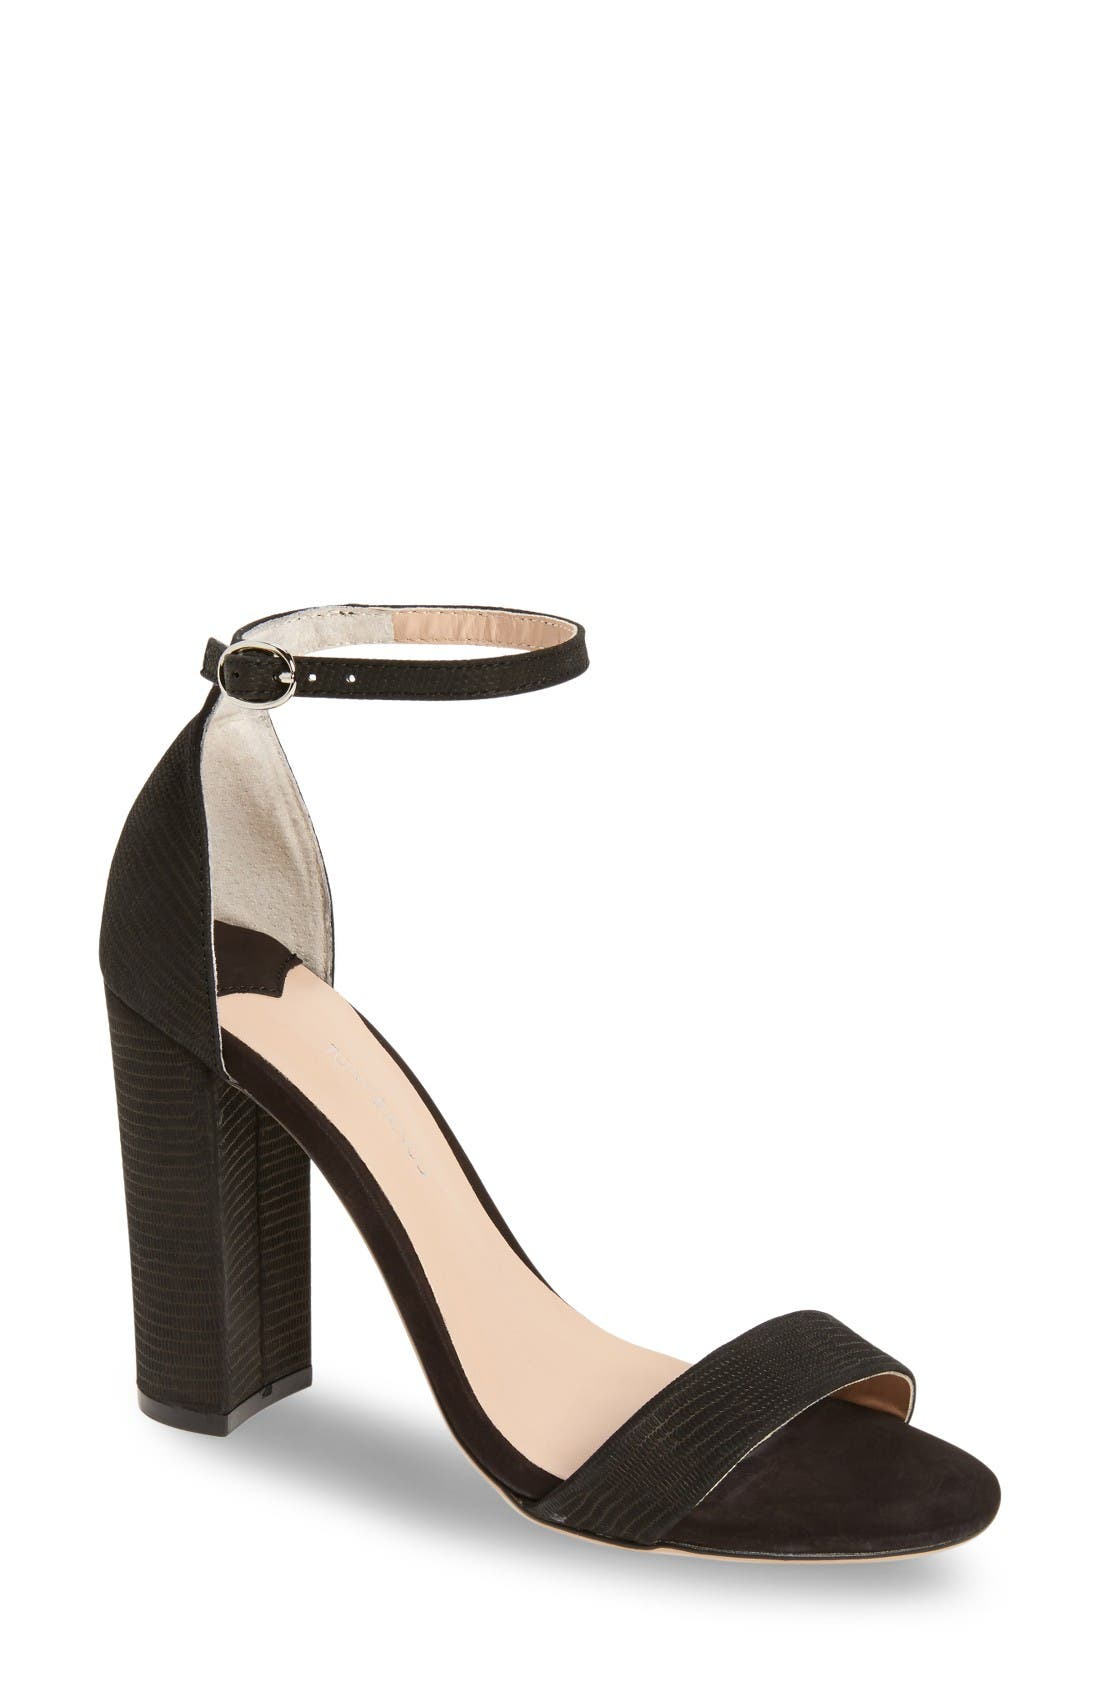 Kokomo Strappy Sandal,                         Main,                         color, Black Berlin